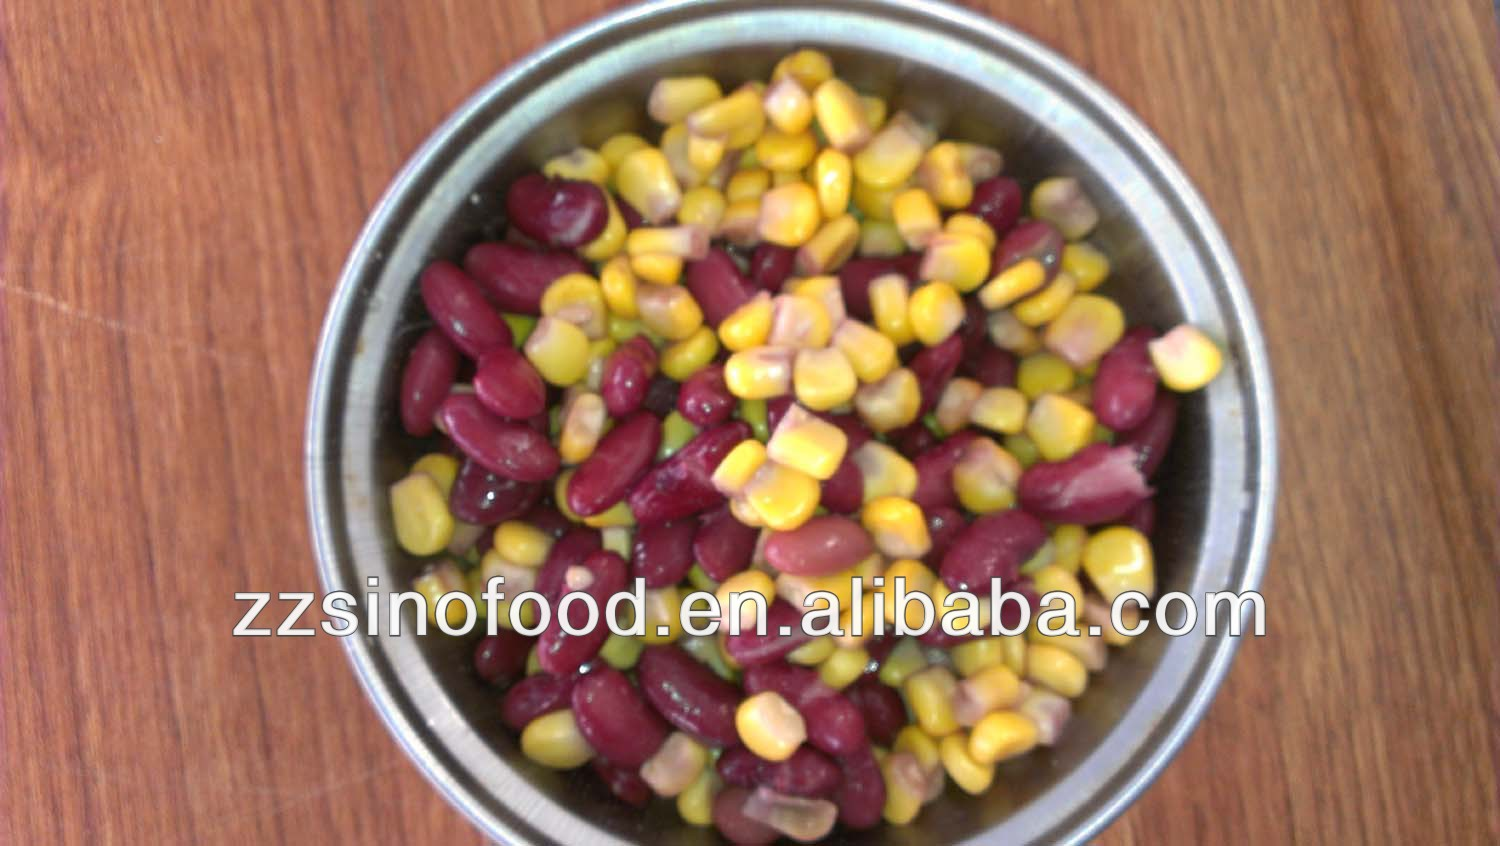 Tins Canned Mixed Red Kidney Beans and Sweet Corn in Brine